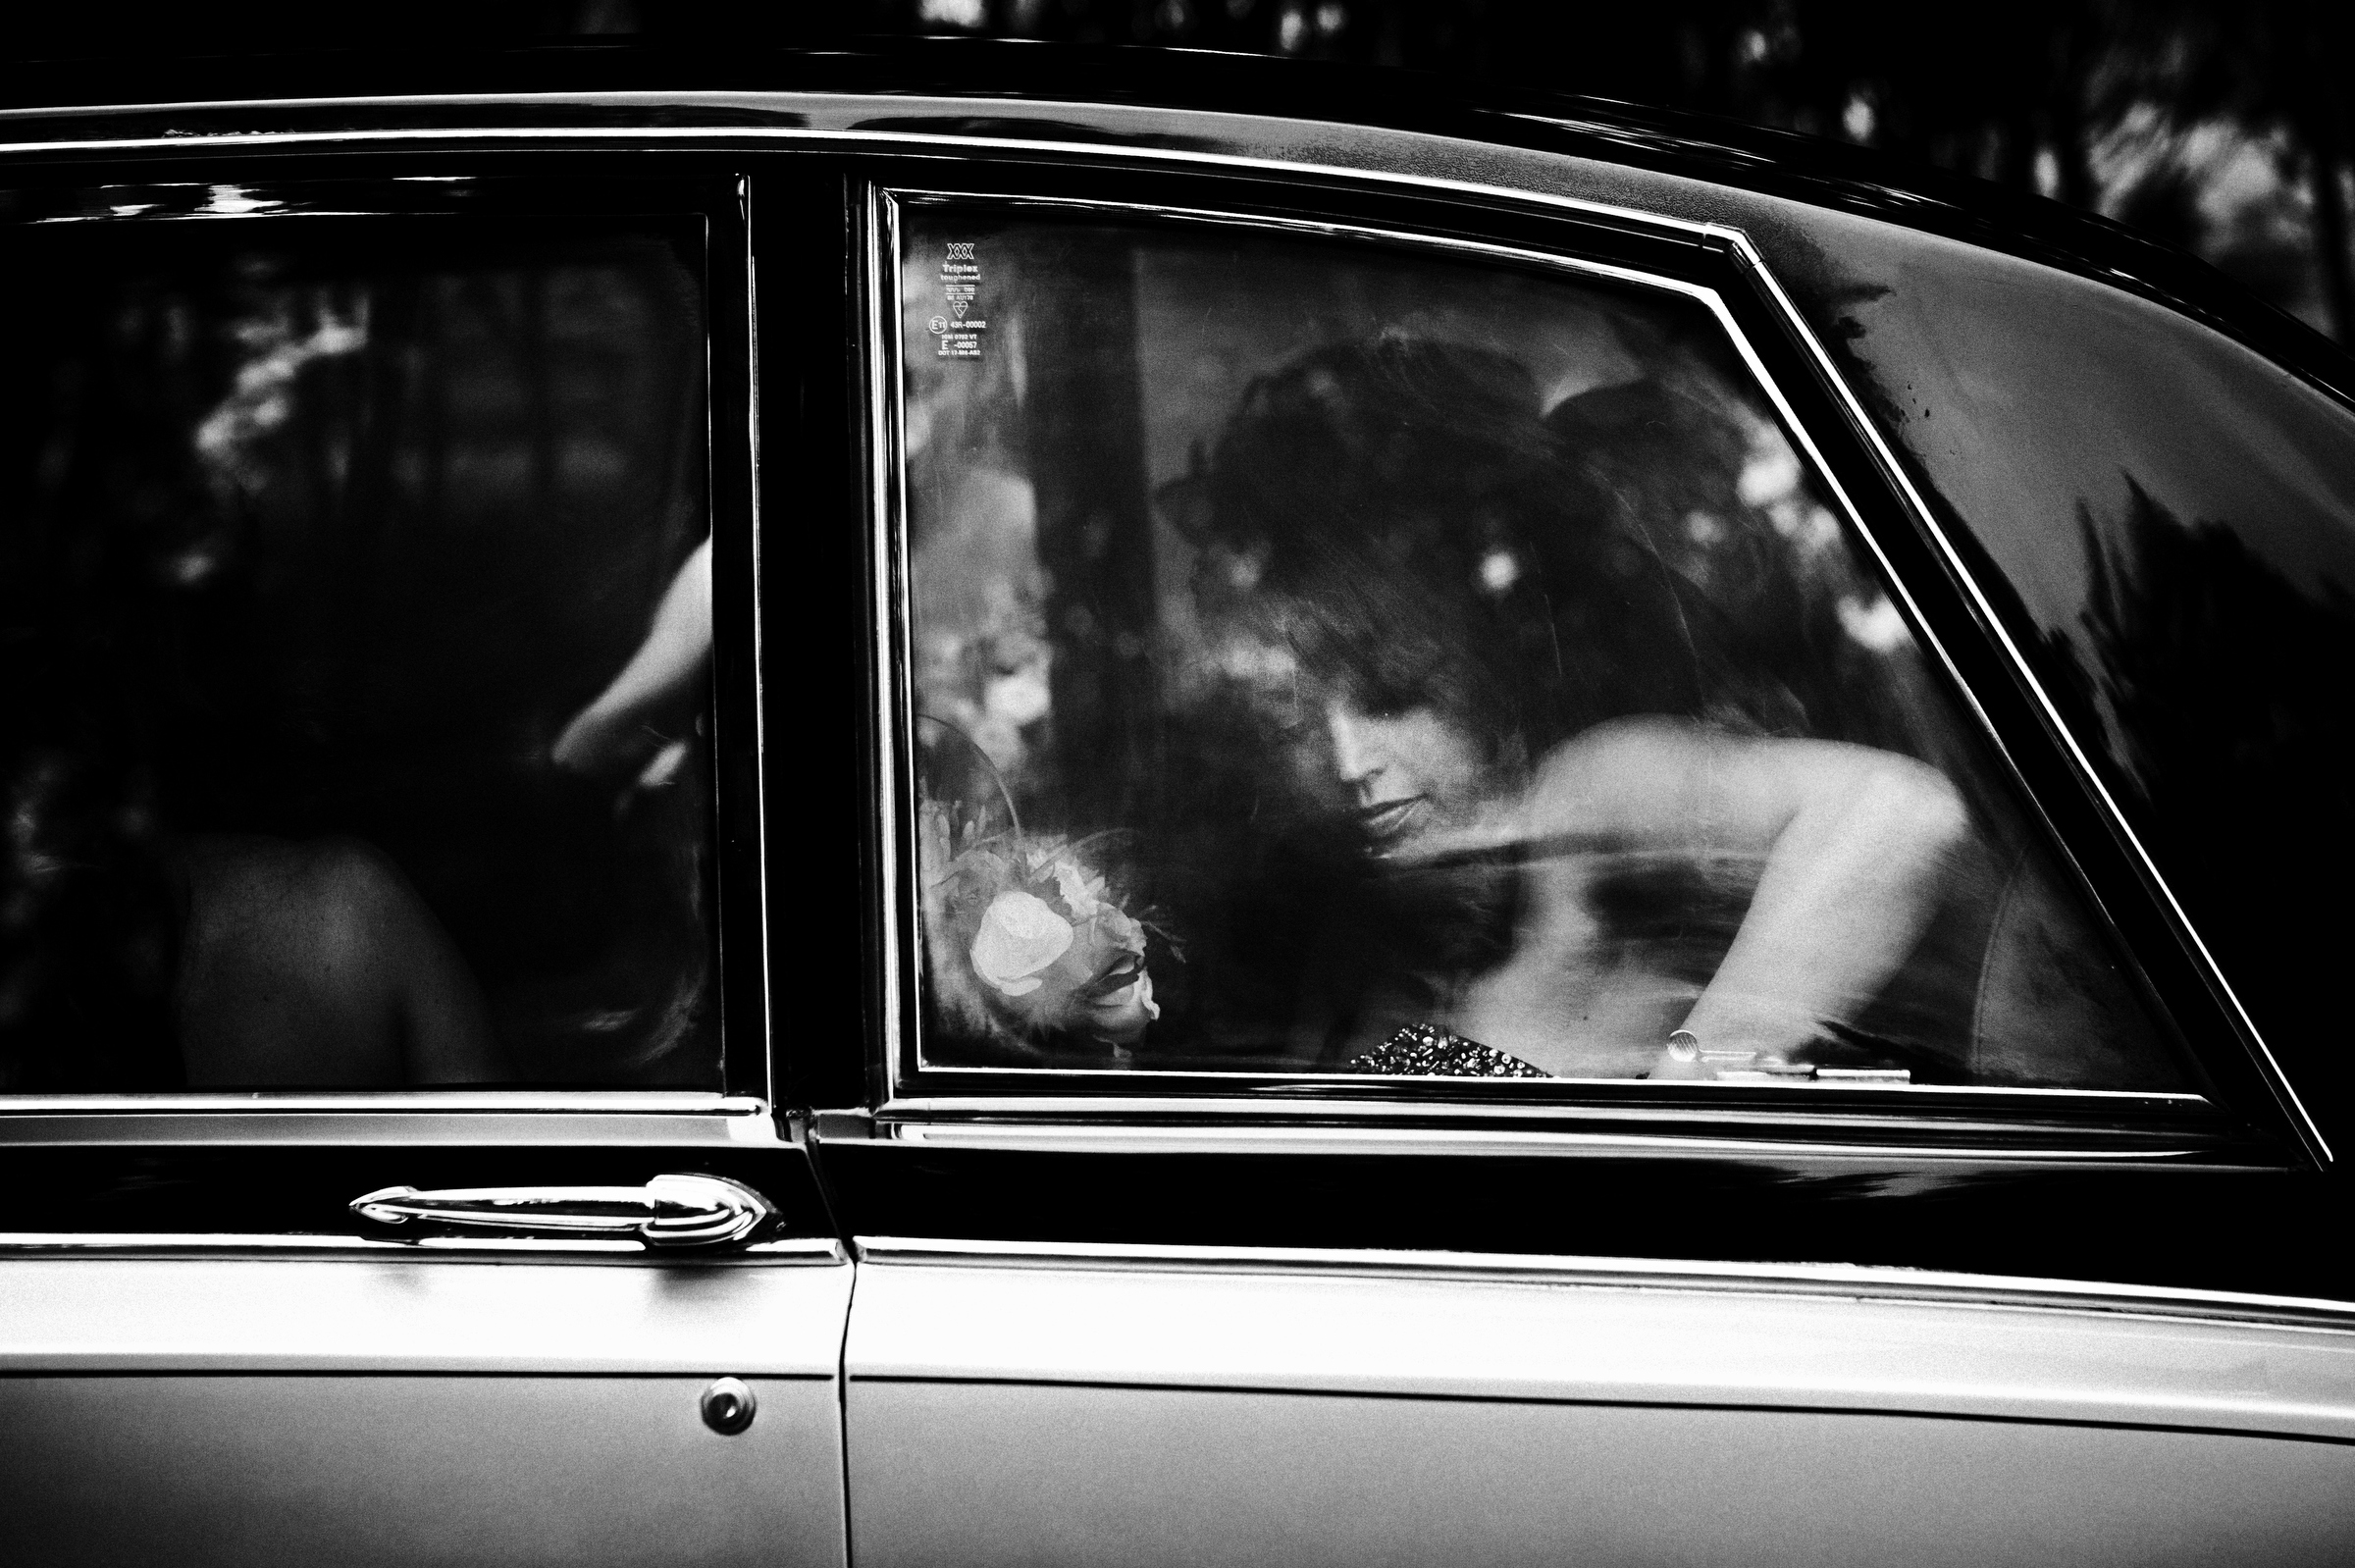 fleeting moment of bride in limousine - photo by Jeff Ascough